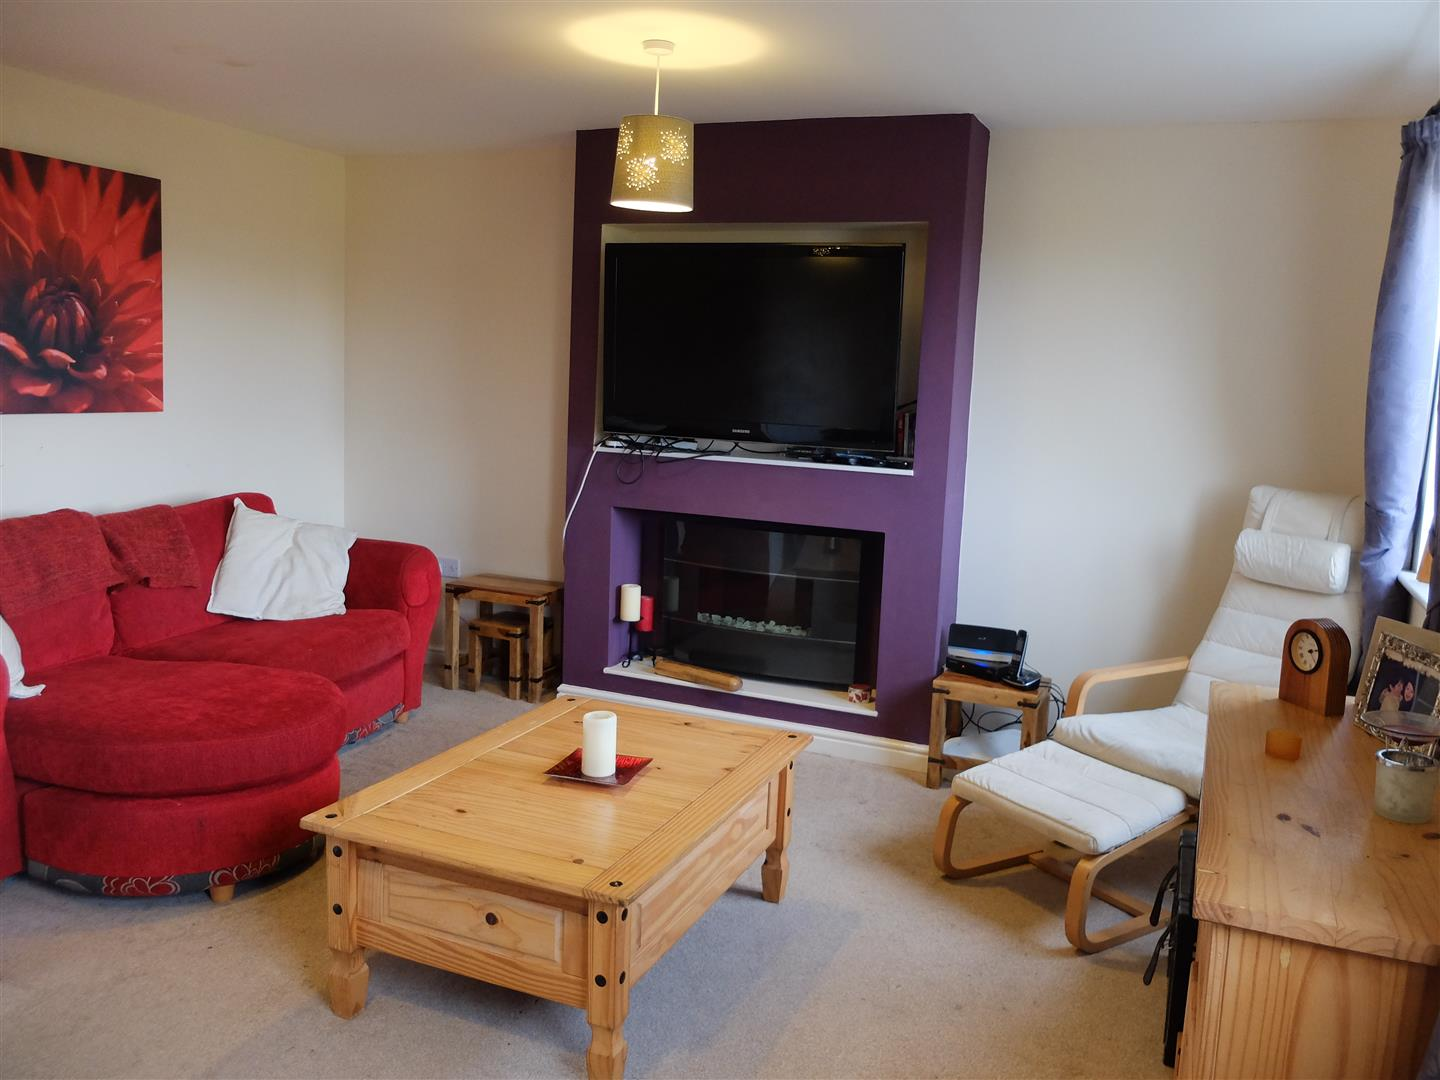 4 Bedrooms House - Mid Terrace For Sale 8 Barley Edge Carlisle